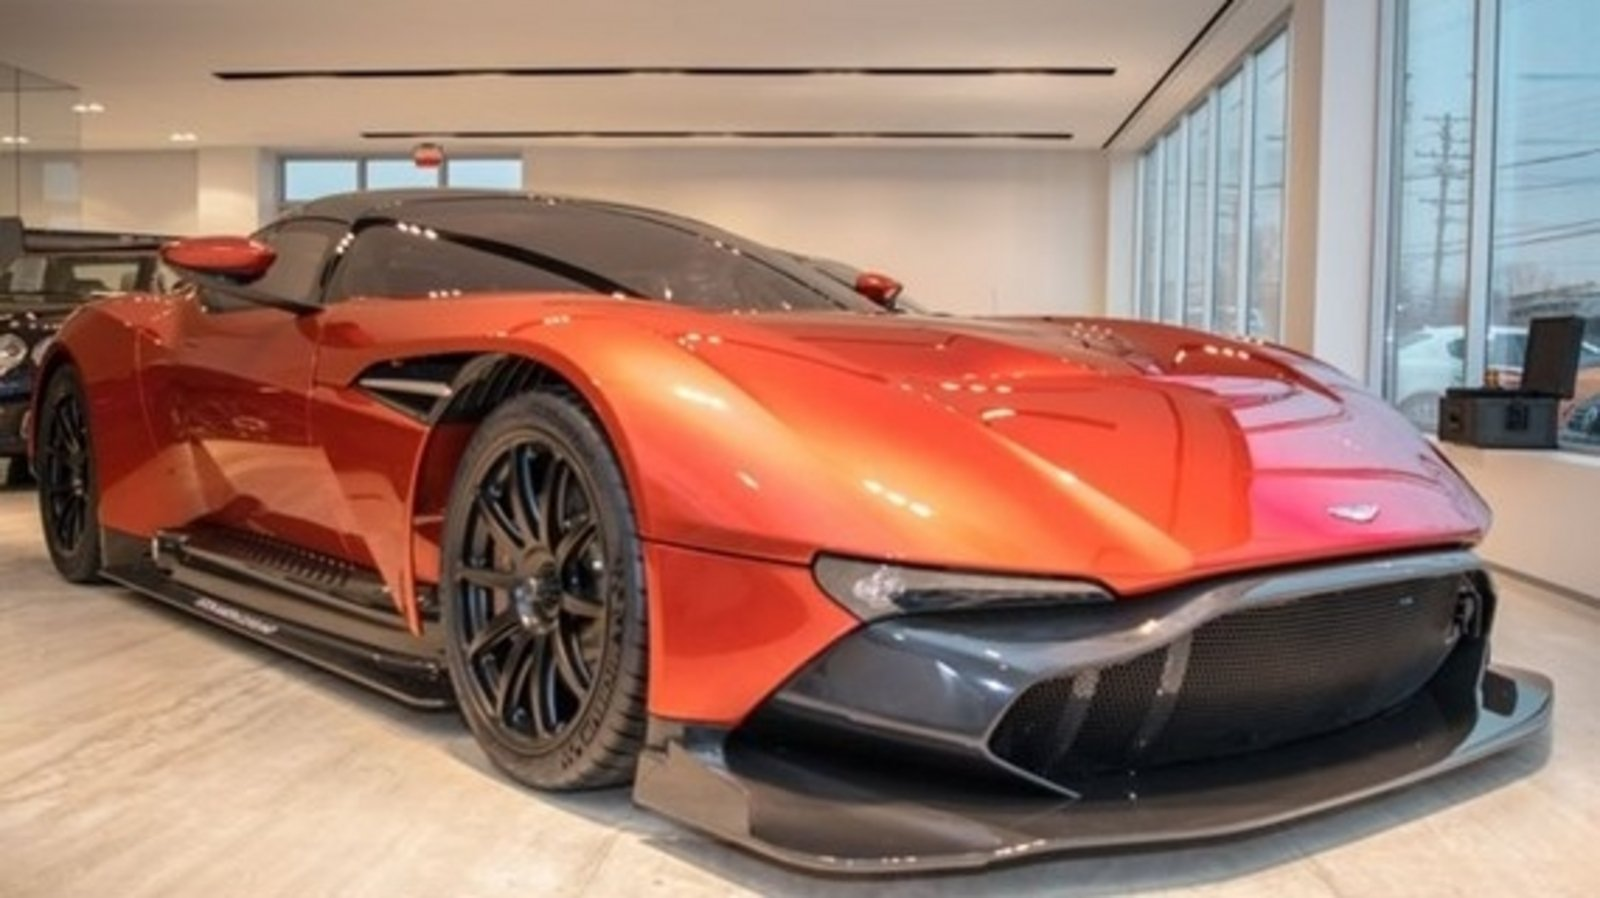 aston martin vulcan for sale for 3 4 million news top speed. Black Bedroom Furniture Sets. Home Design Ideas